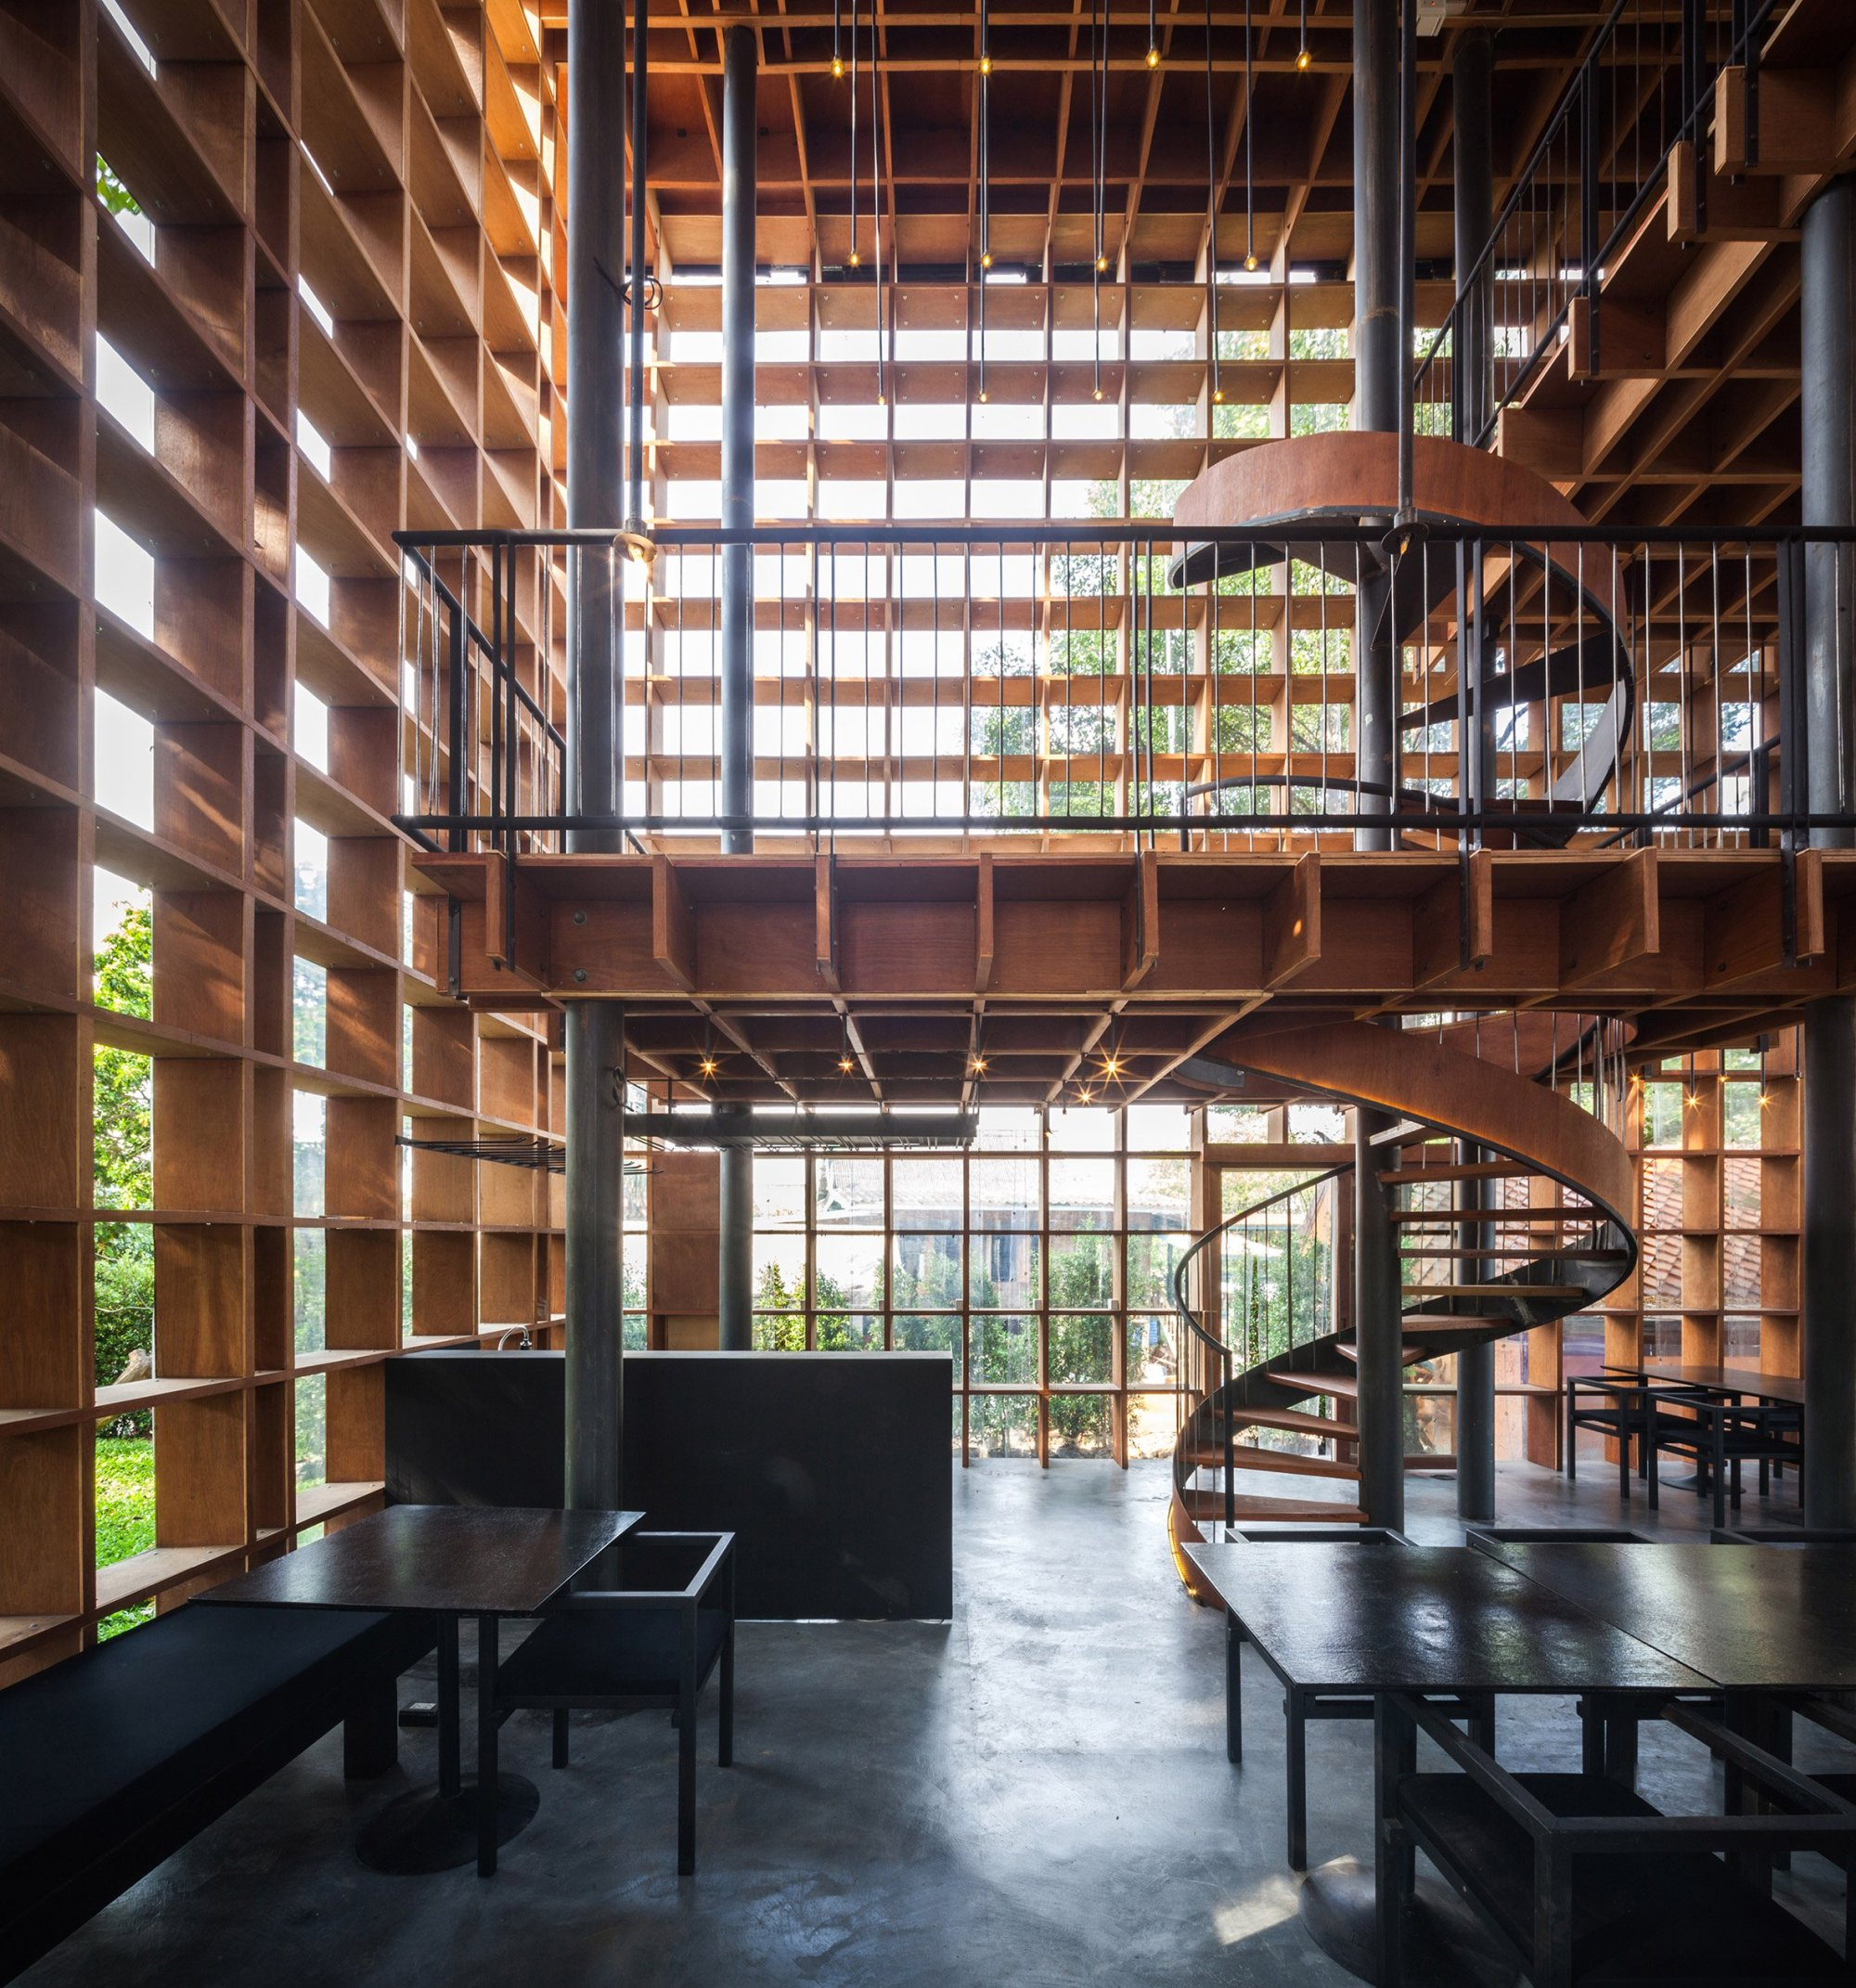 wine-bangkok-project-studio-architecture-public-leisure-thailand-_dezeen_2364_col_11 (1)